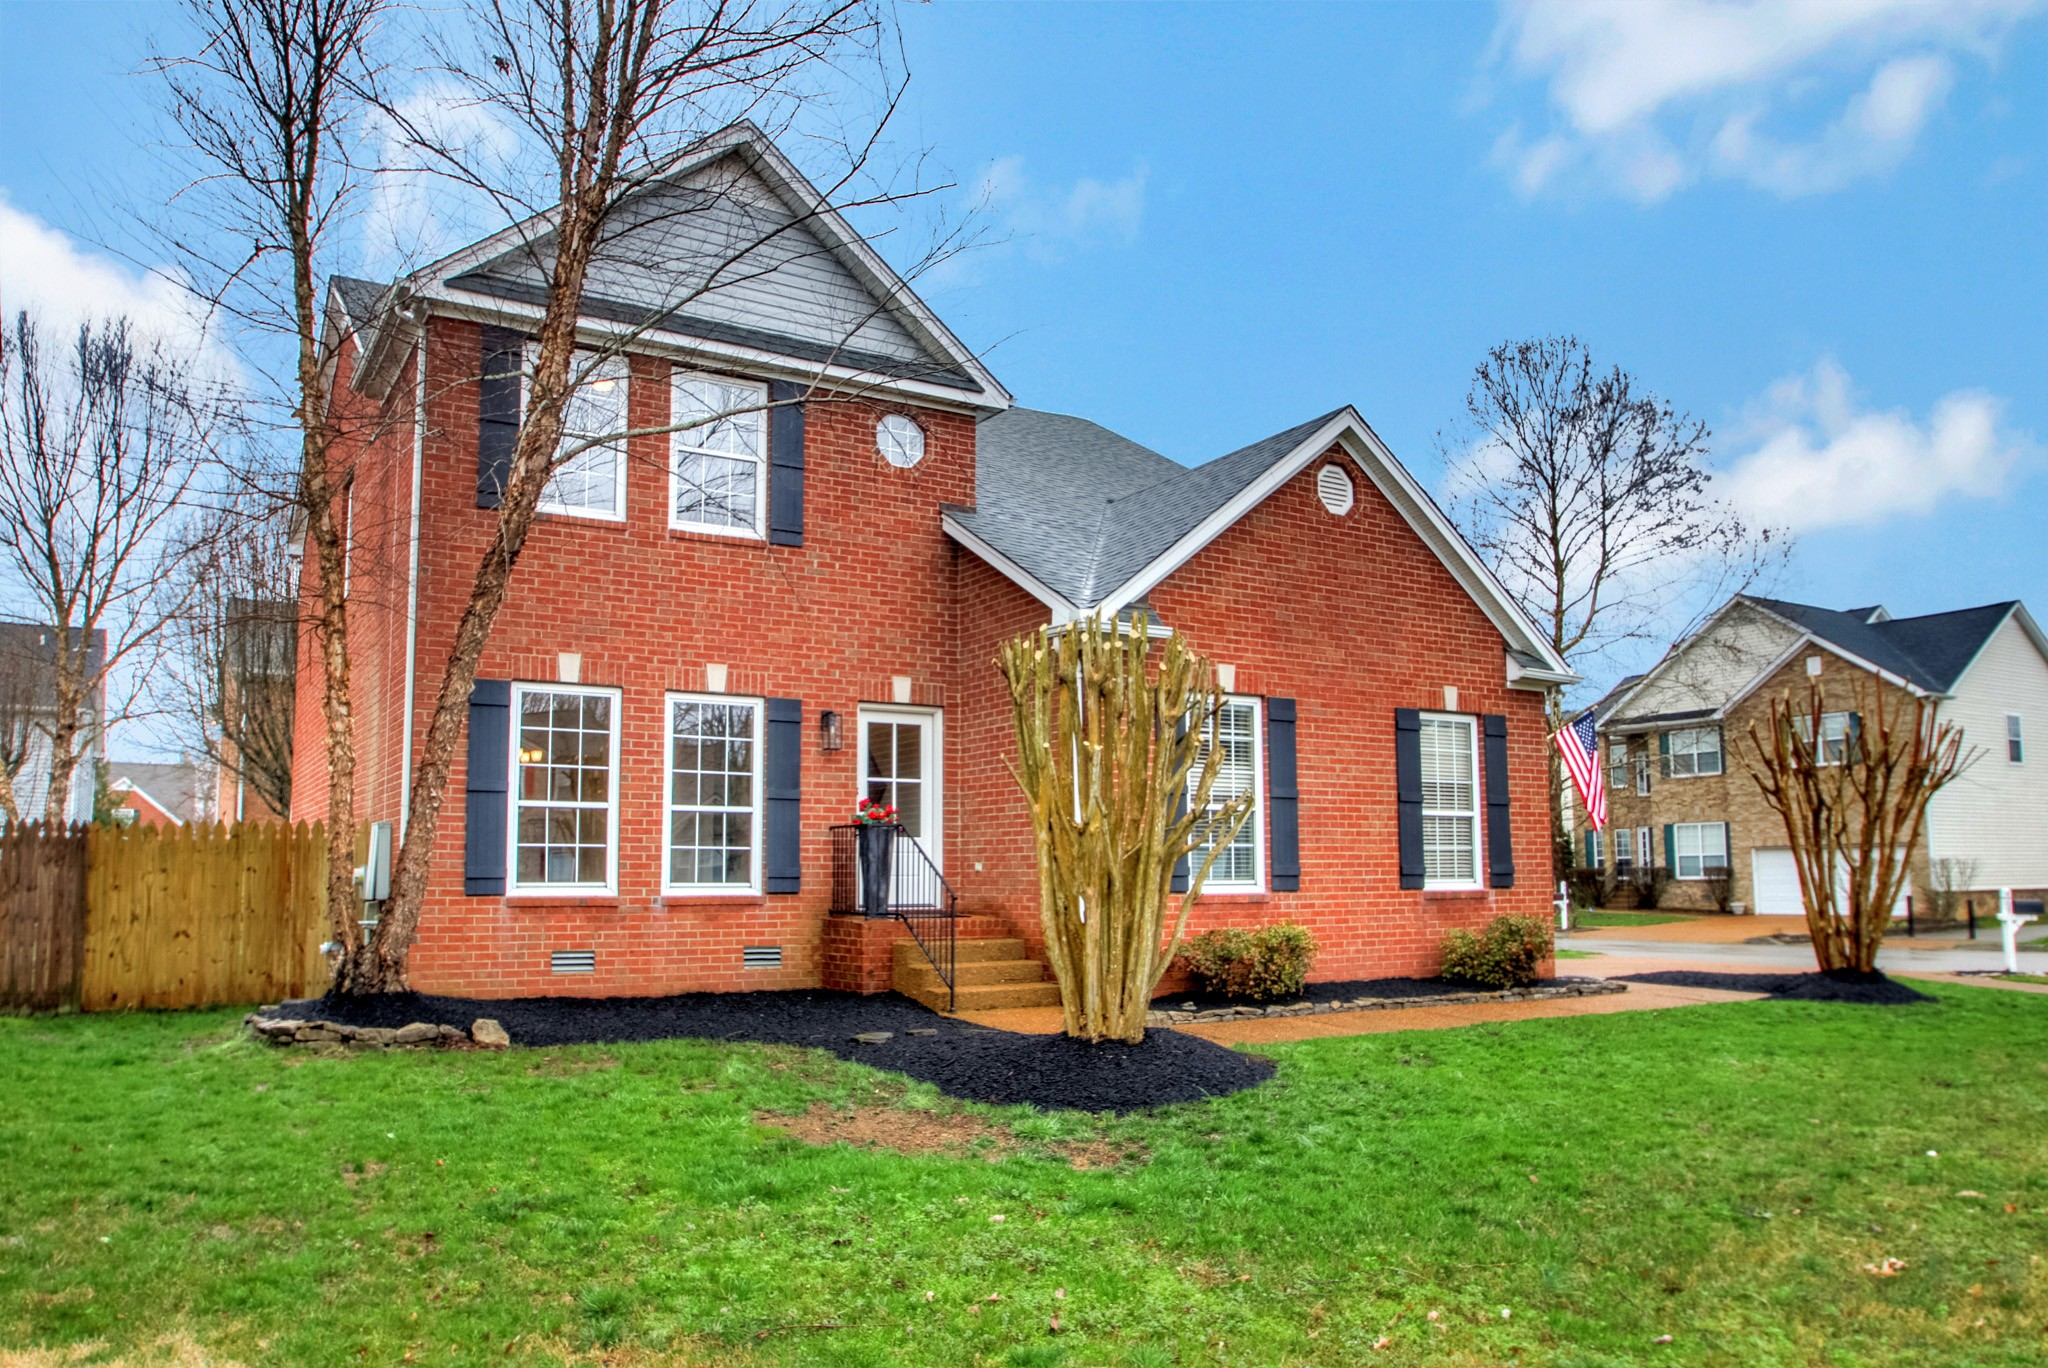 469 Essex Park Cir, Franklin, TN 37069 - Franklin, TN real estate listing